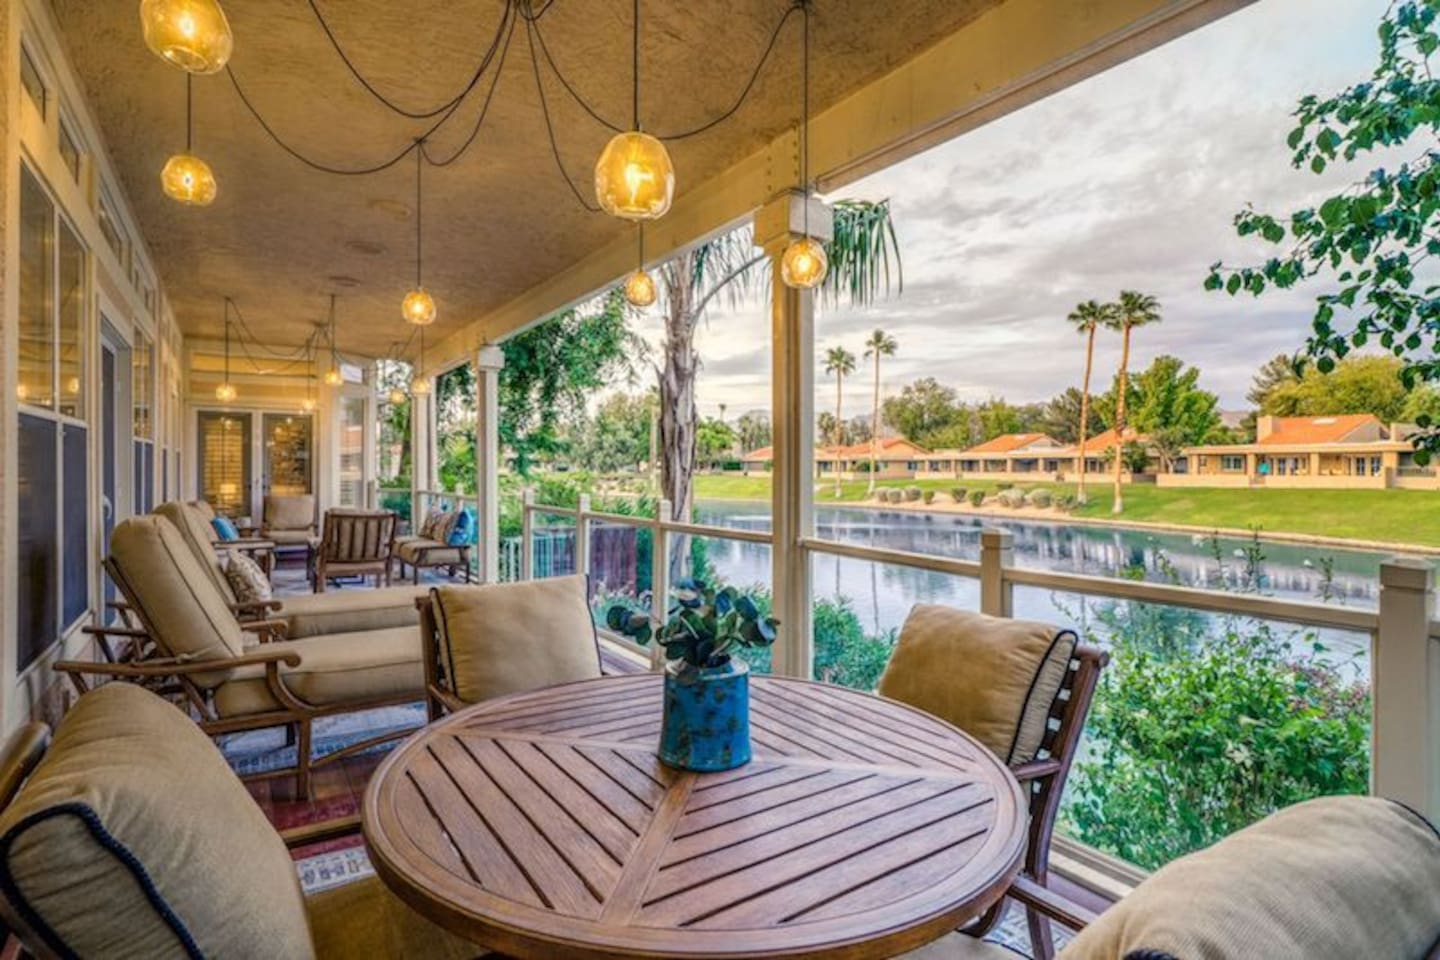 Amazing Patio overlooking the lake.  Lounge chairs and dining table for evening dinner or morning coffee.